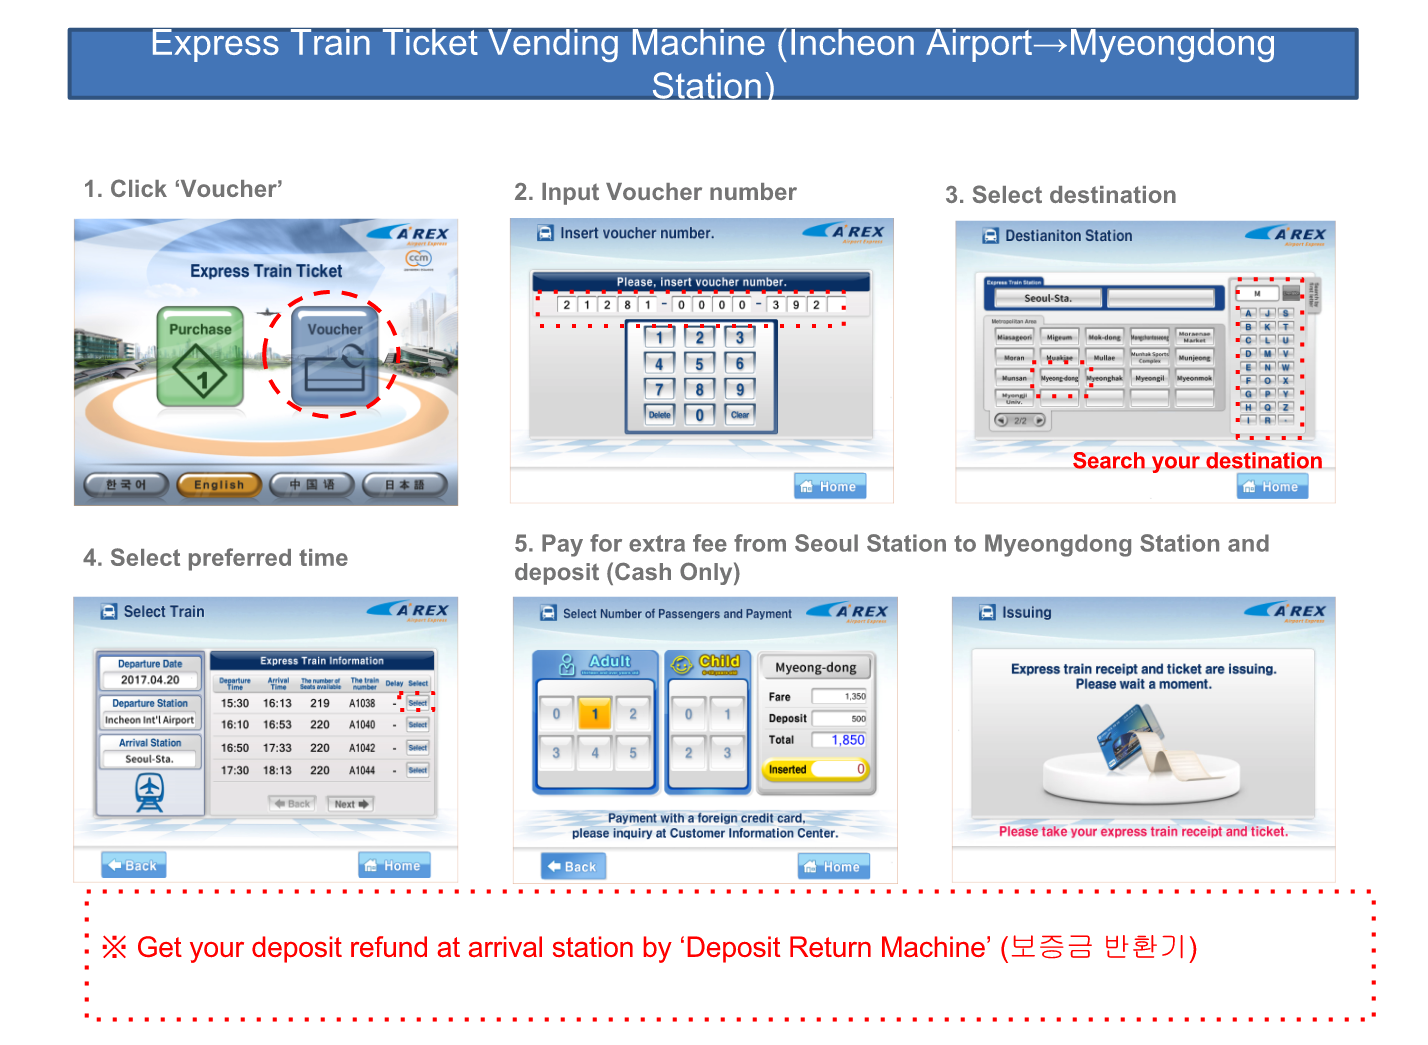 Visual guide for redeeming airport express tickets for  Incheon to other stations . Image credit:  Klook